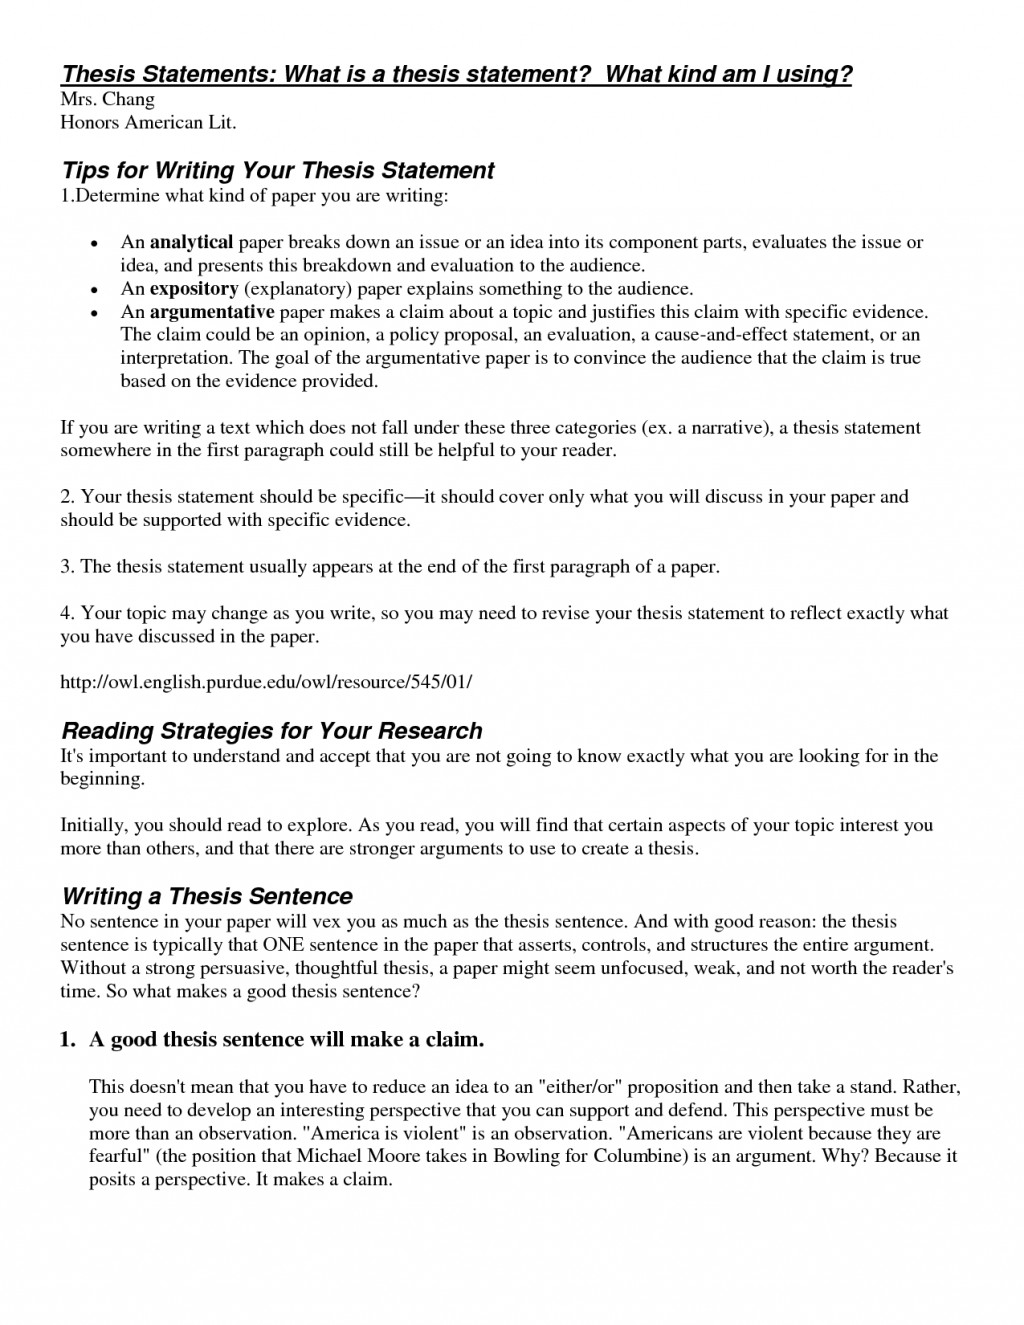 008 Research Paper Good Thesis Statement For Stirring Psychology Examples Large